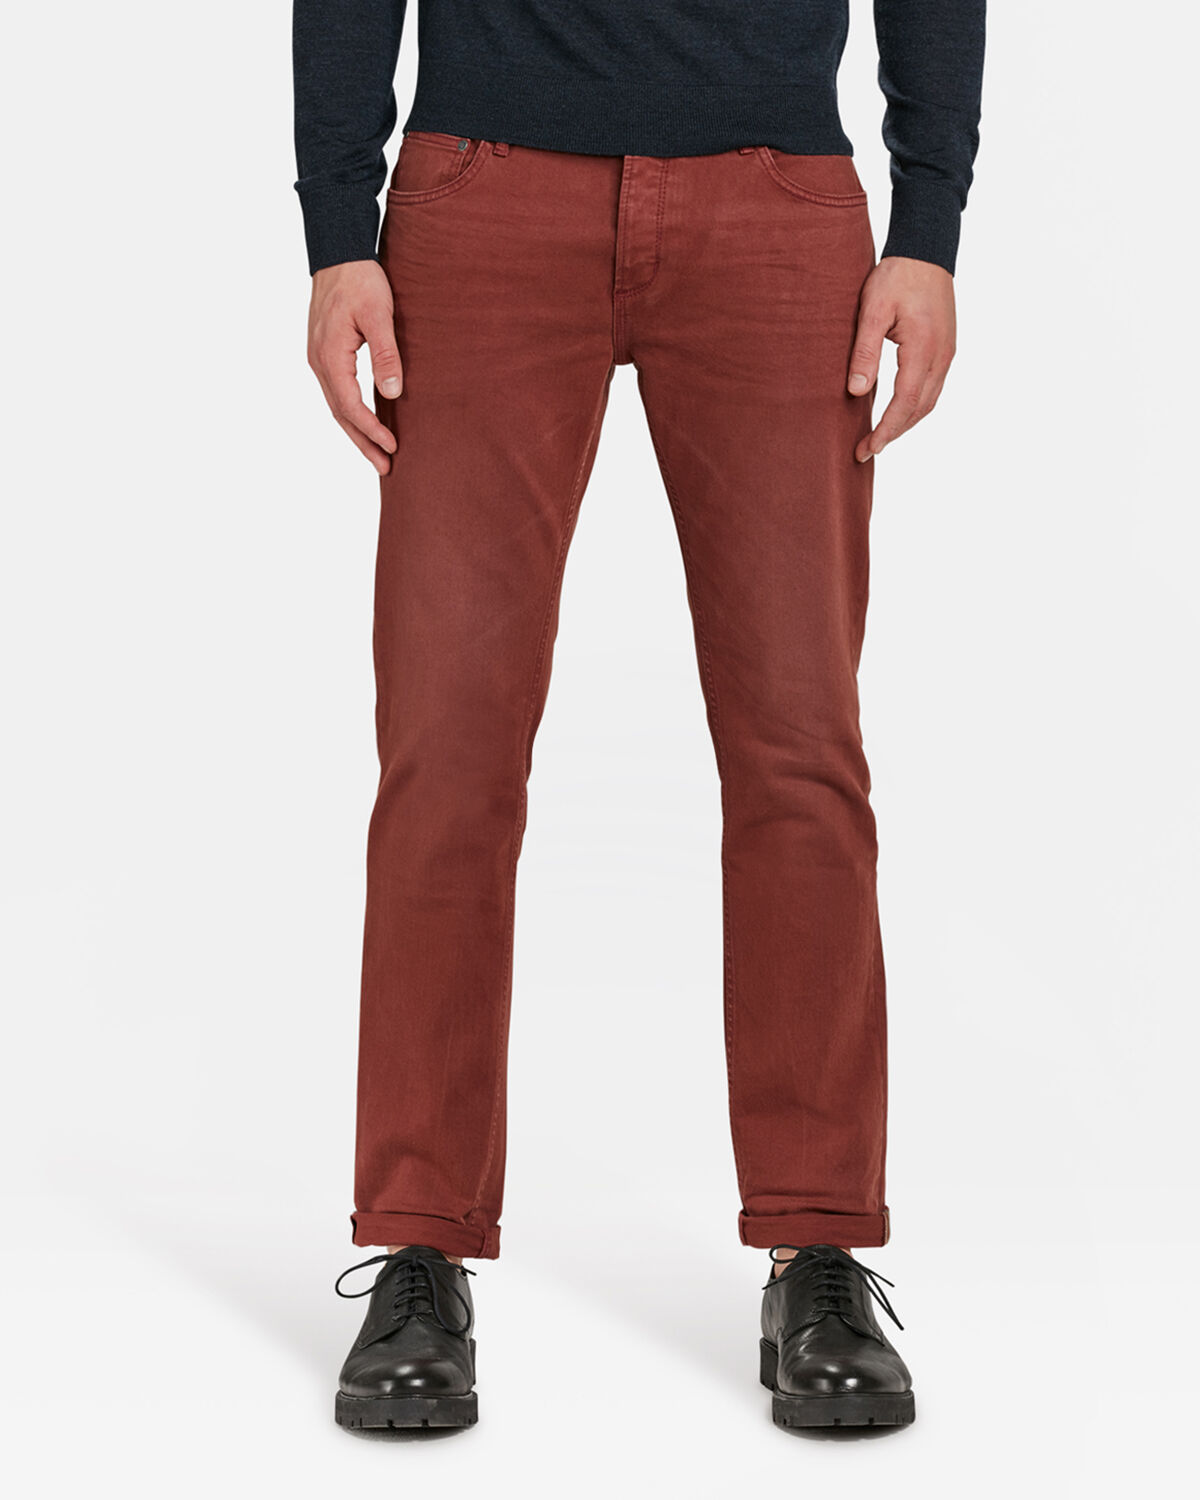 HEREN SLIM TAPERED BROEK | 81567911 WE Fashion